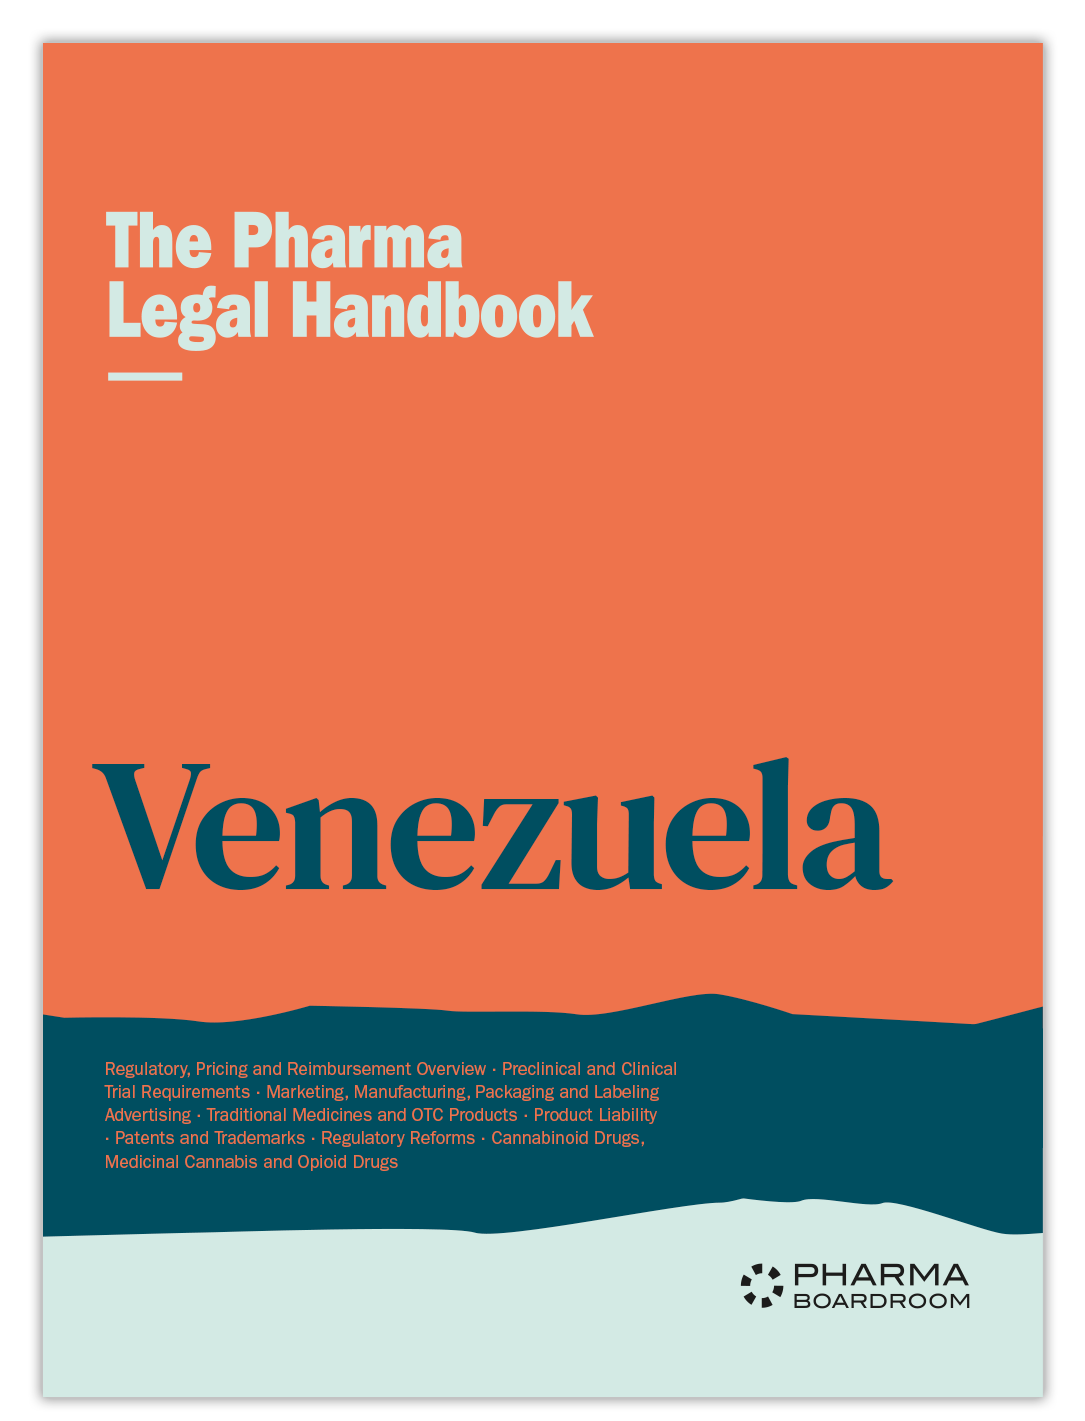 The Pharma Legal Handbook: Venezuela